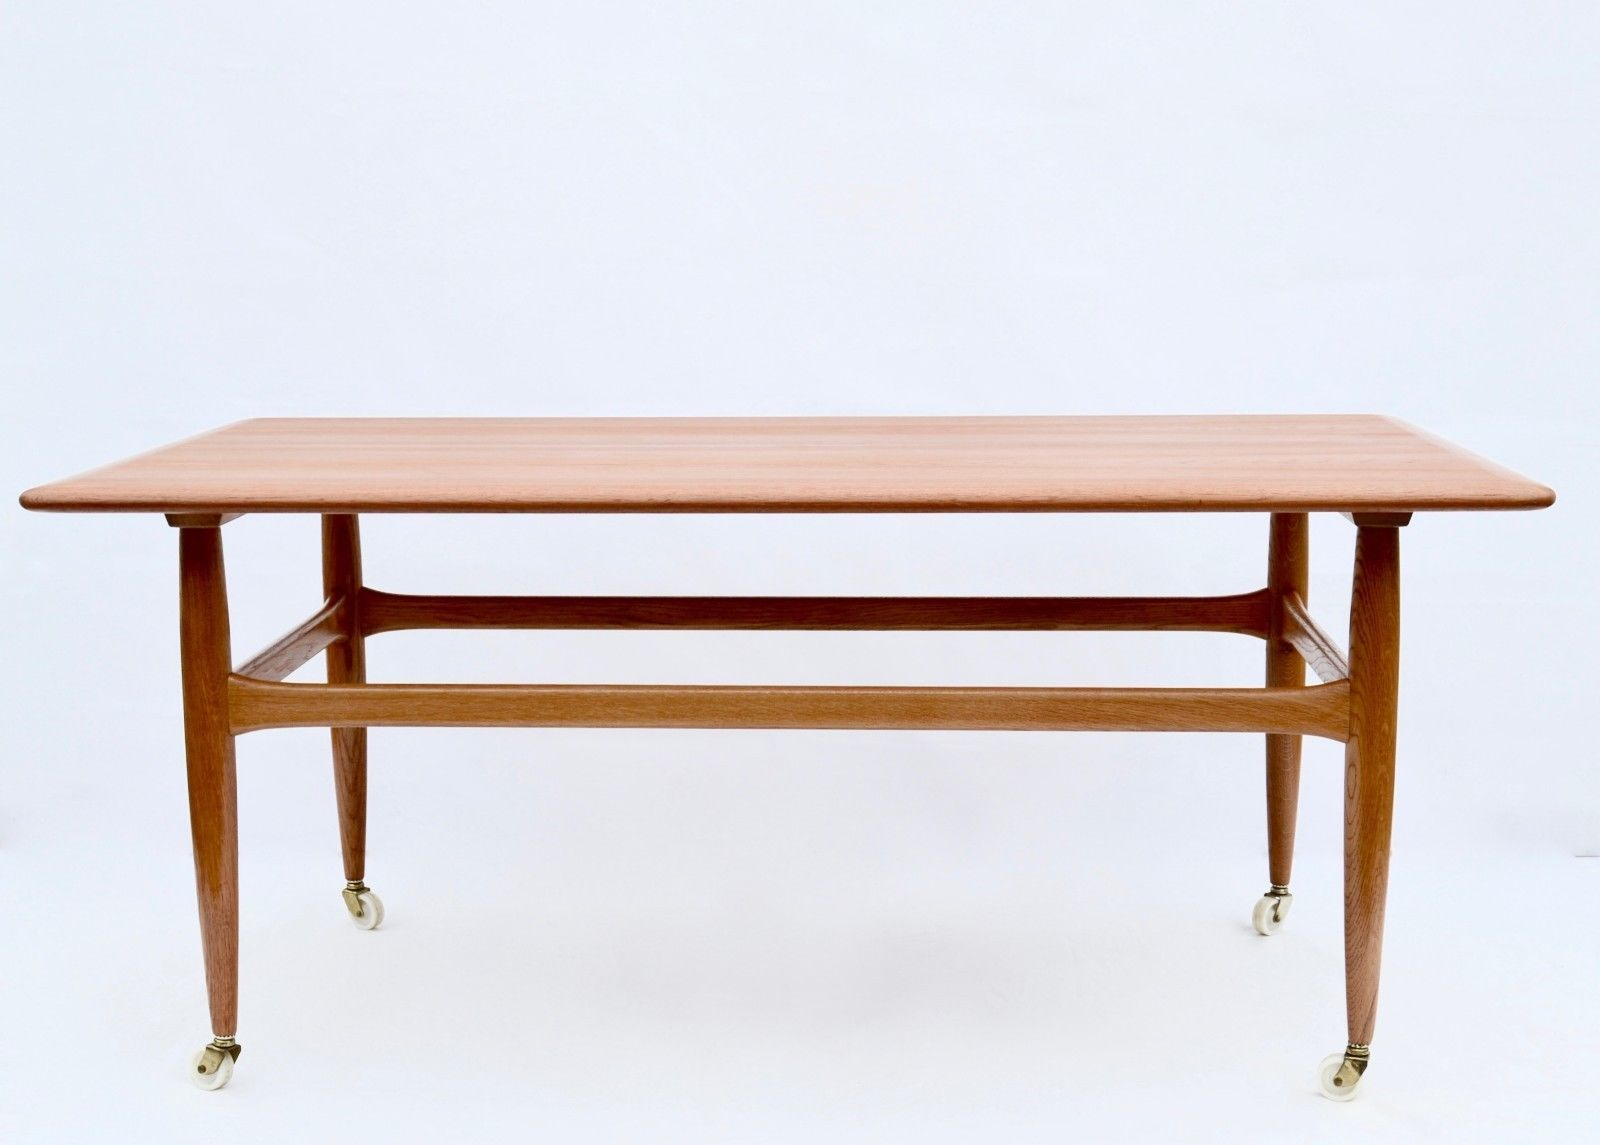 G Plan Coffee Table Rare Solid Teak Glass Mid Century Vintage Retro In Home Furniture Diy Furniture Tables Ebay [ 804 x 1000 Pixel ]